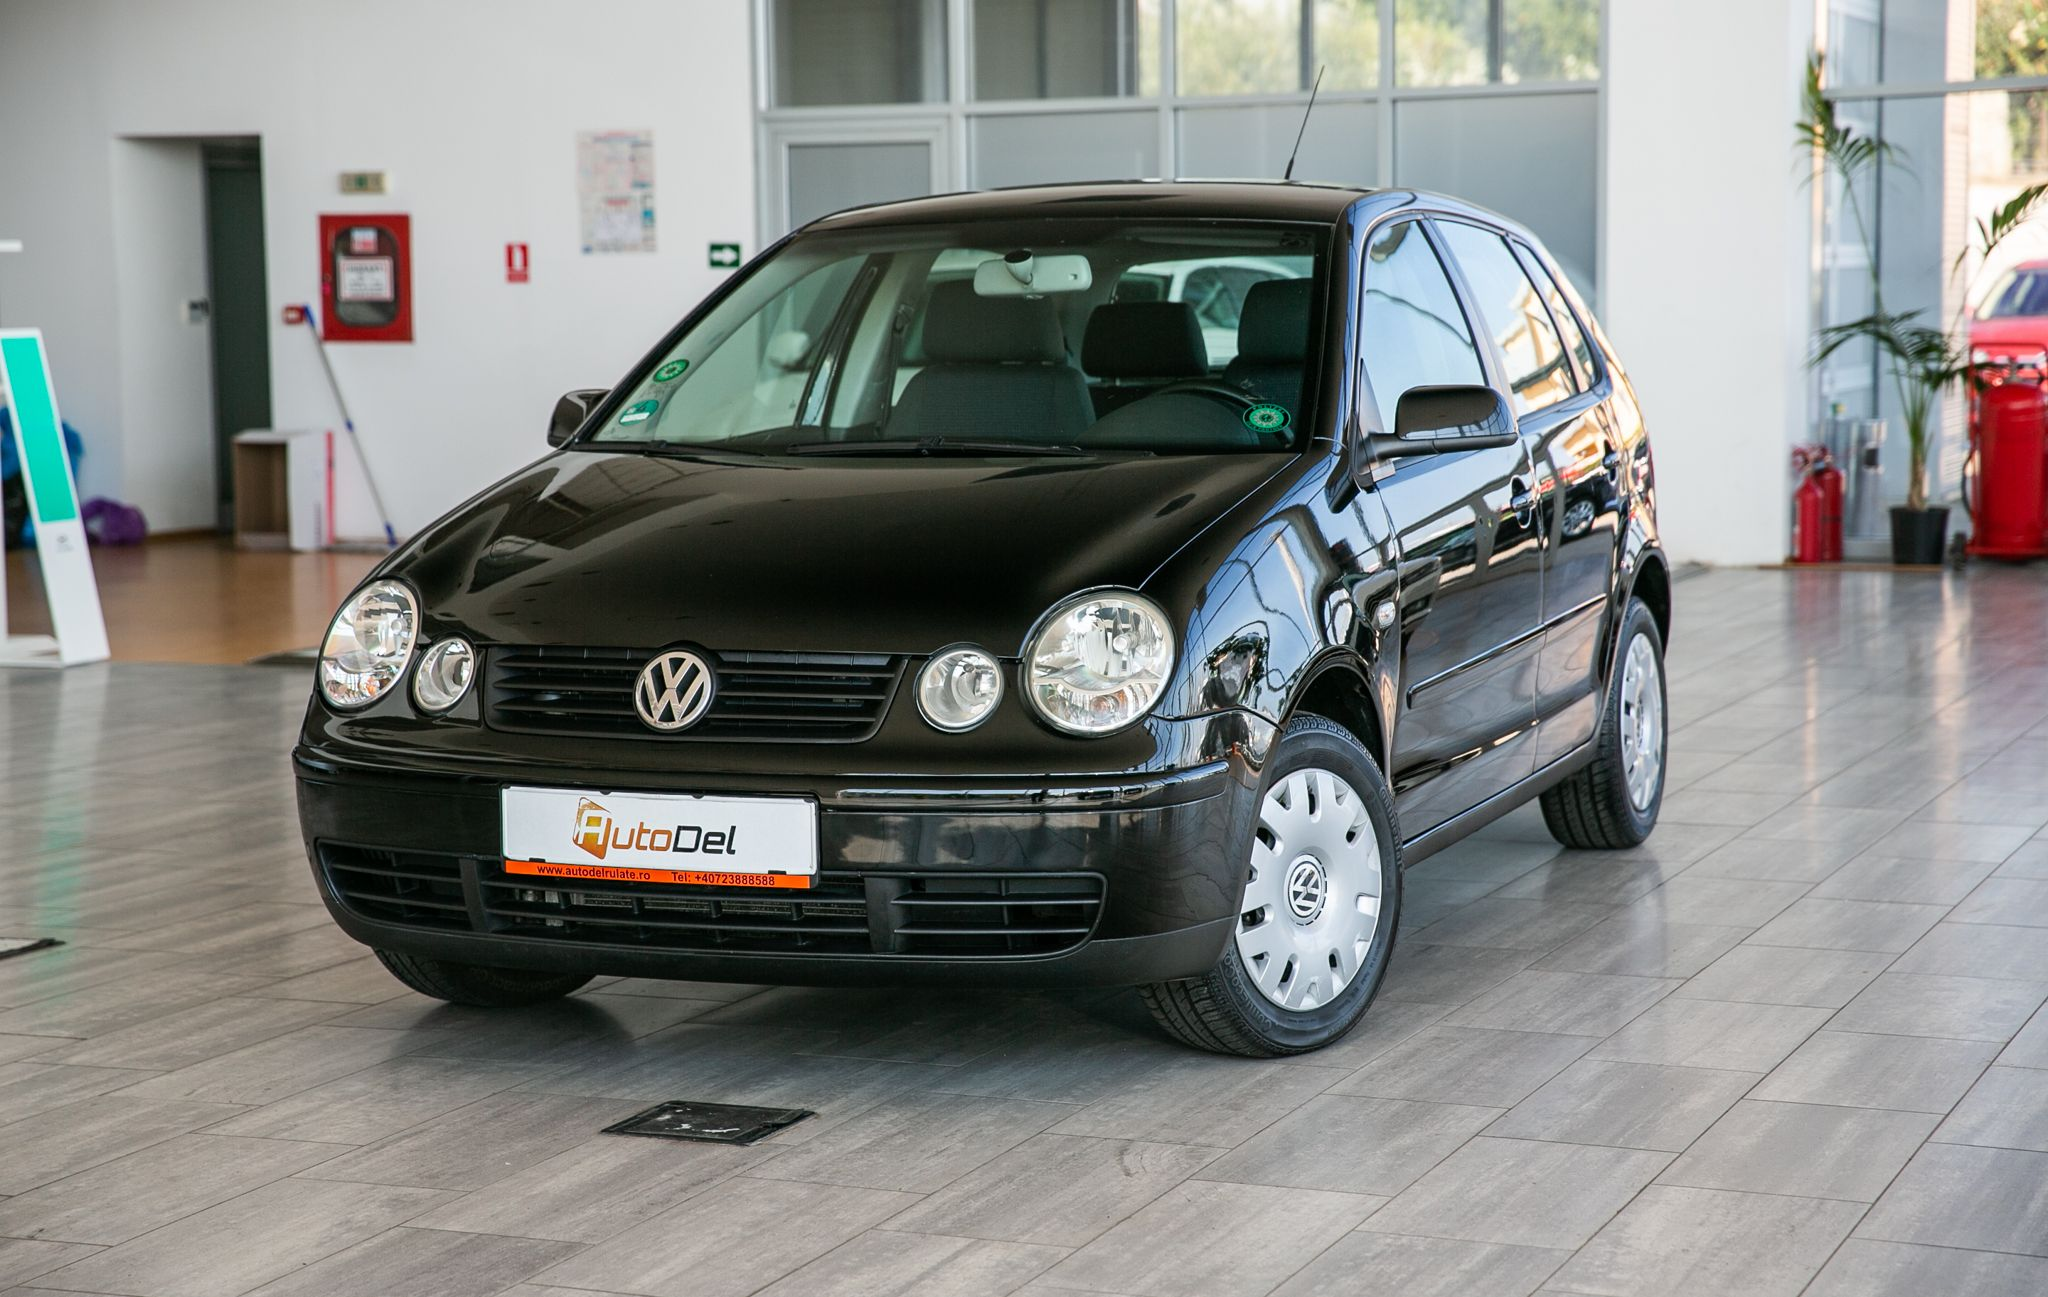 Volkswagen Polo 2005 Second Hand